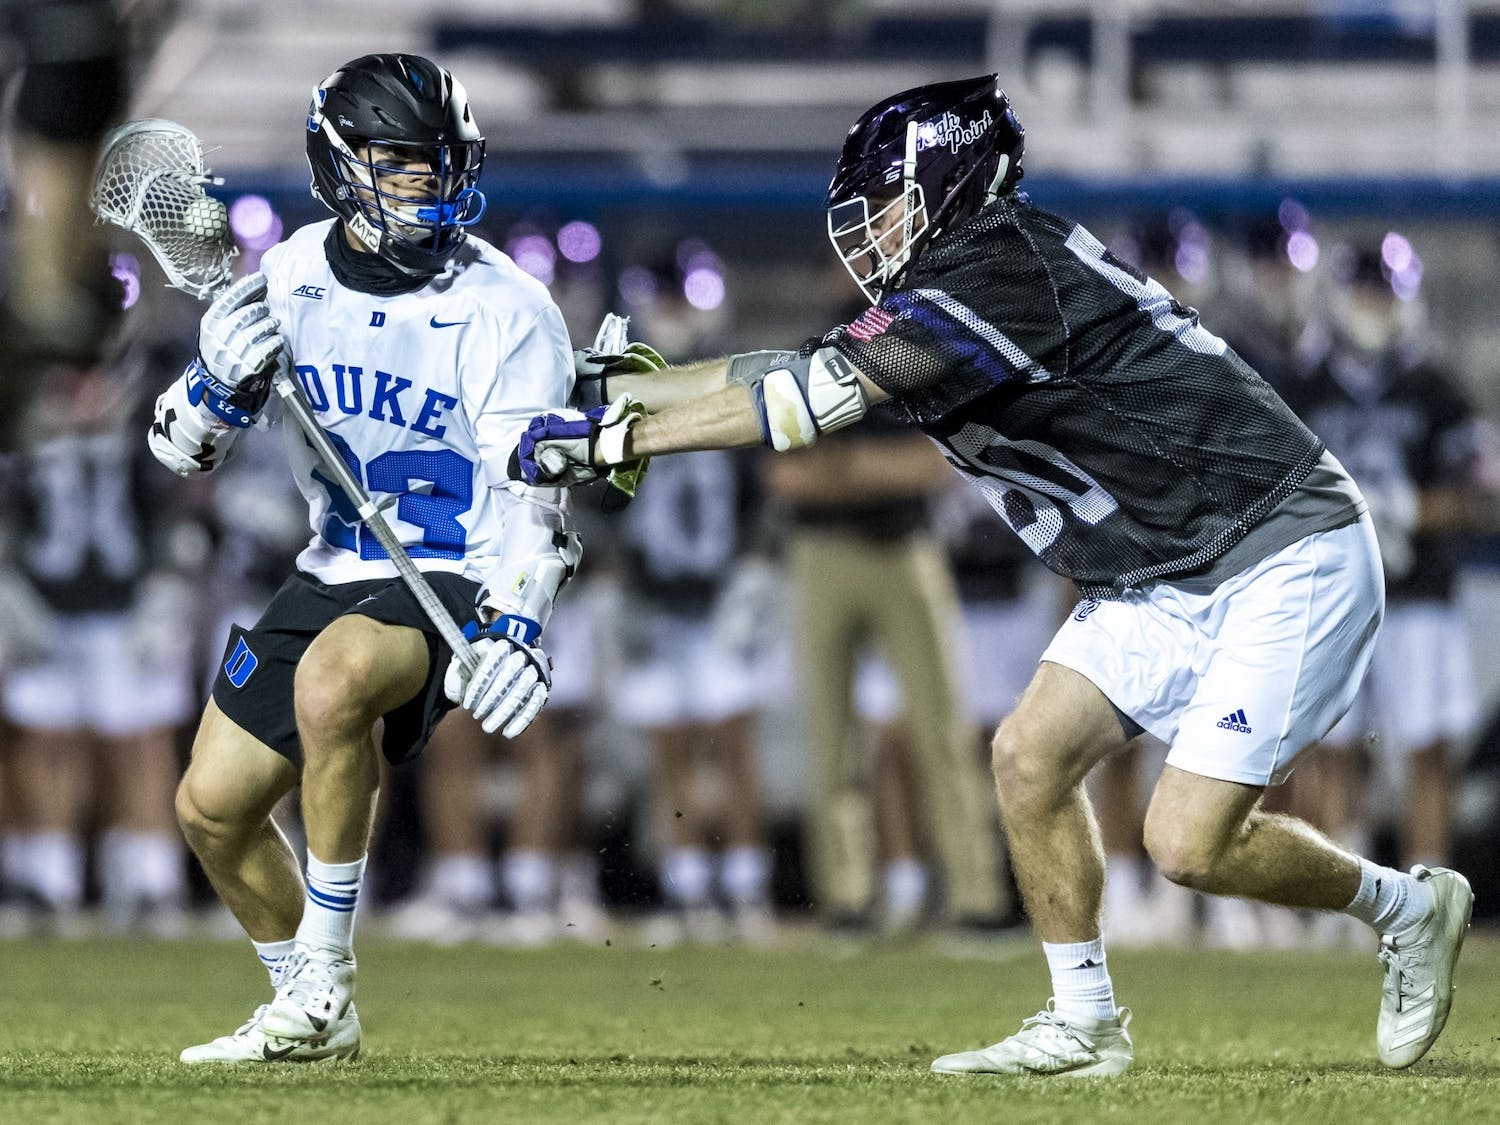 In his first postseason, Michael Sowers will look to lead Duke past the unbeaten Terrapins.